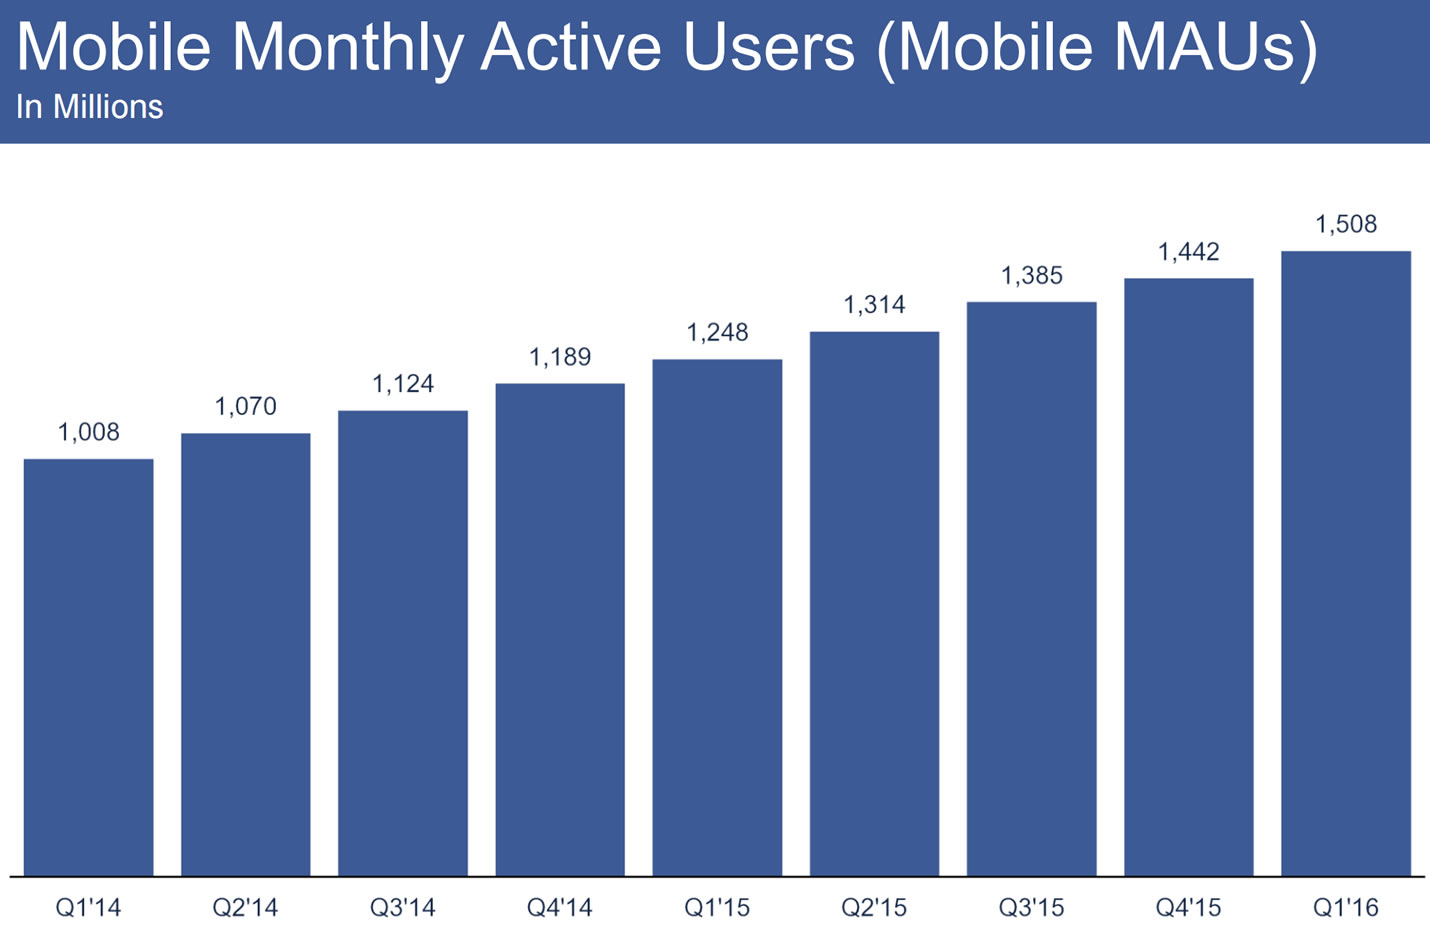 894 million mobile-only MAUs on Facebook